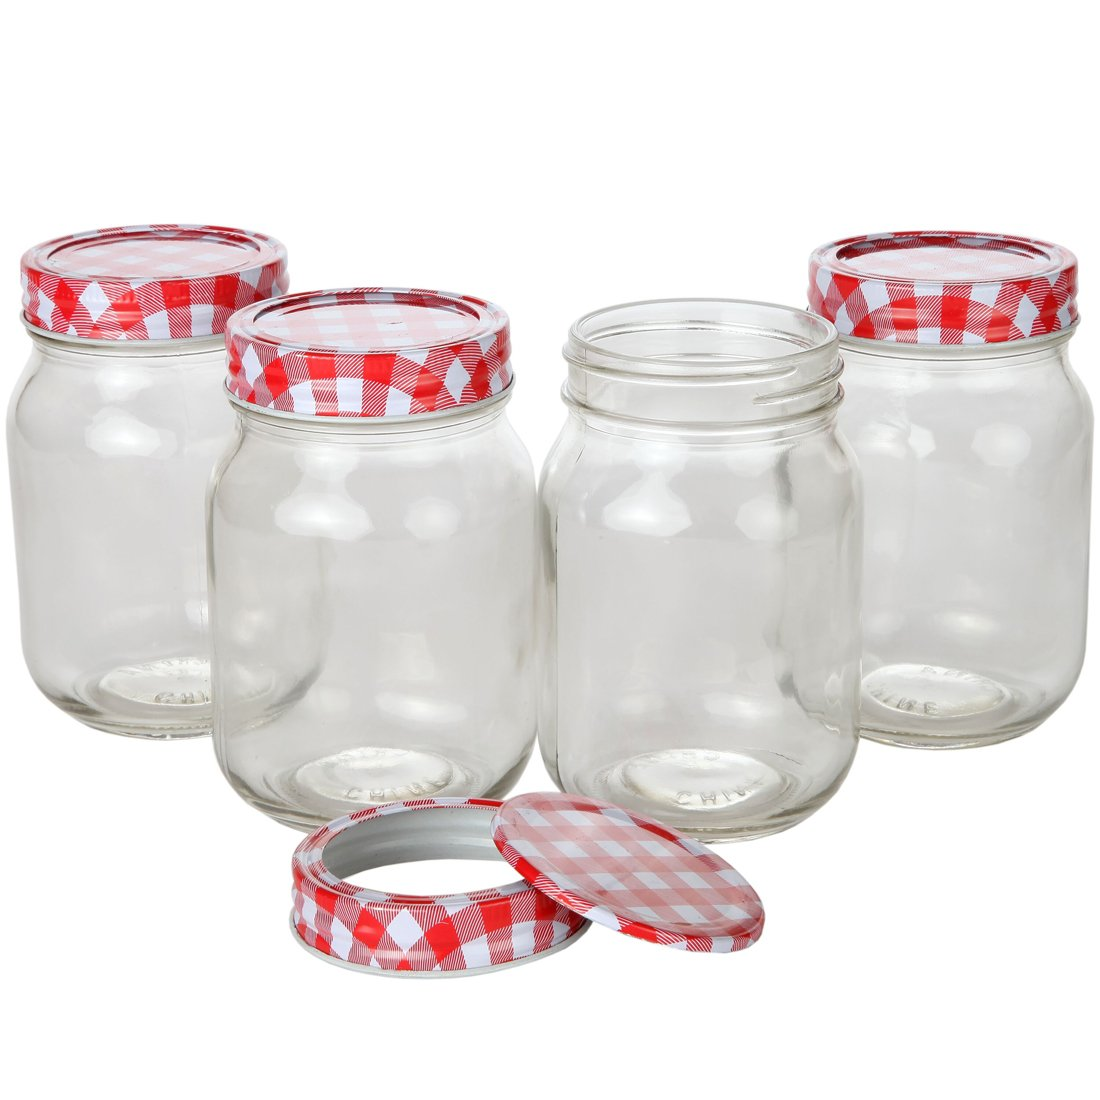 Lily's Home Classic Regular Mouth Glass Mason Jars with Checkered Lids and Bands, Use as Jelly or Storage Jars, Ideal for Homemade Sauces, Pickles, Candles, or Tea (16 oz. Capacity, Pack of 4)